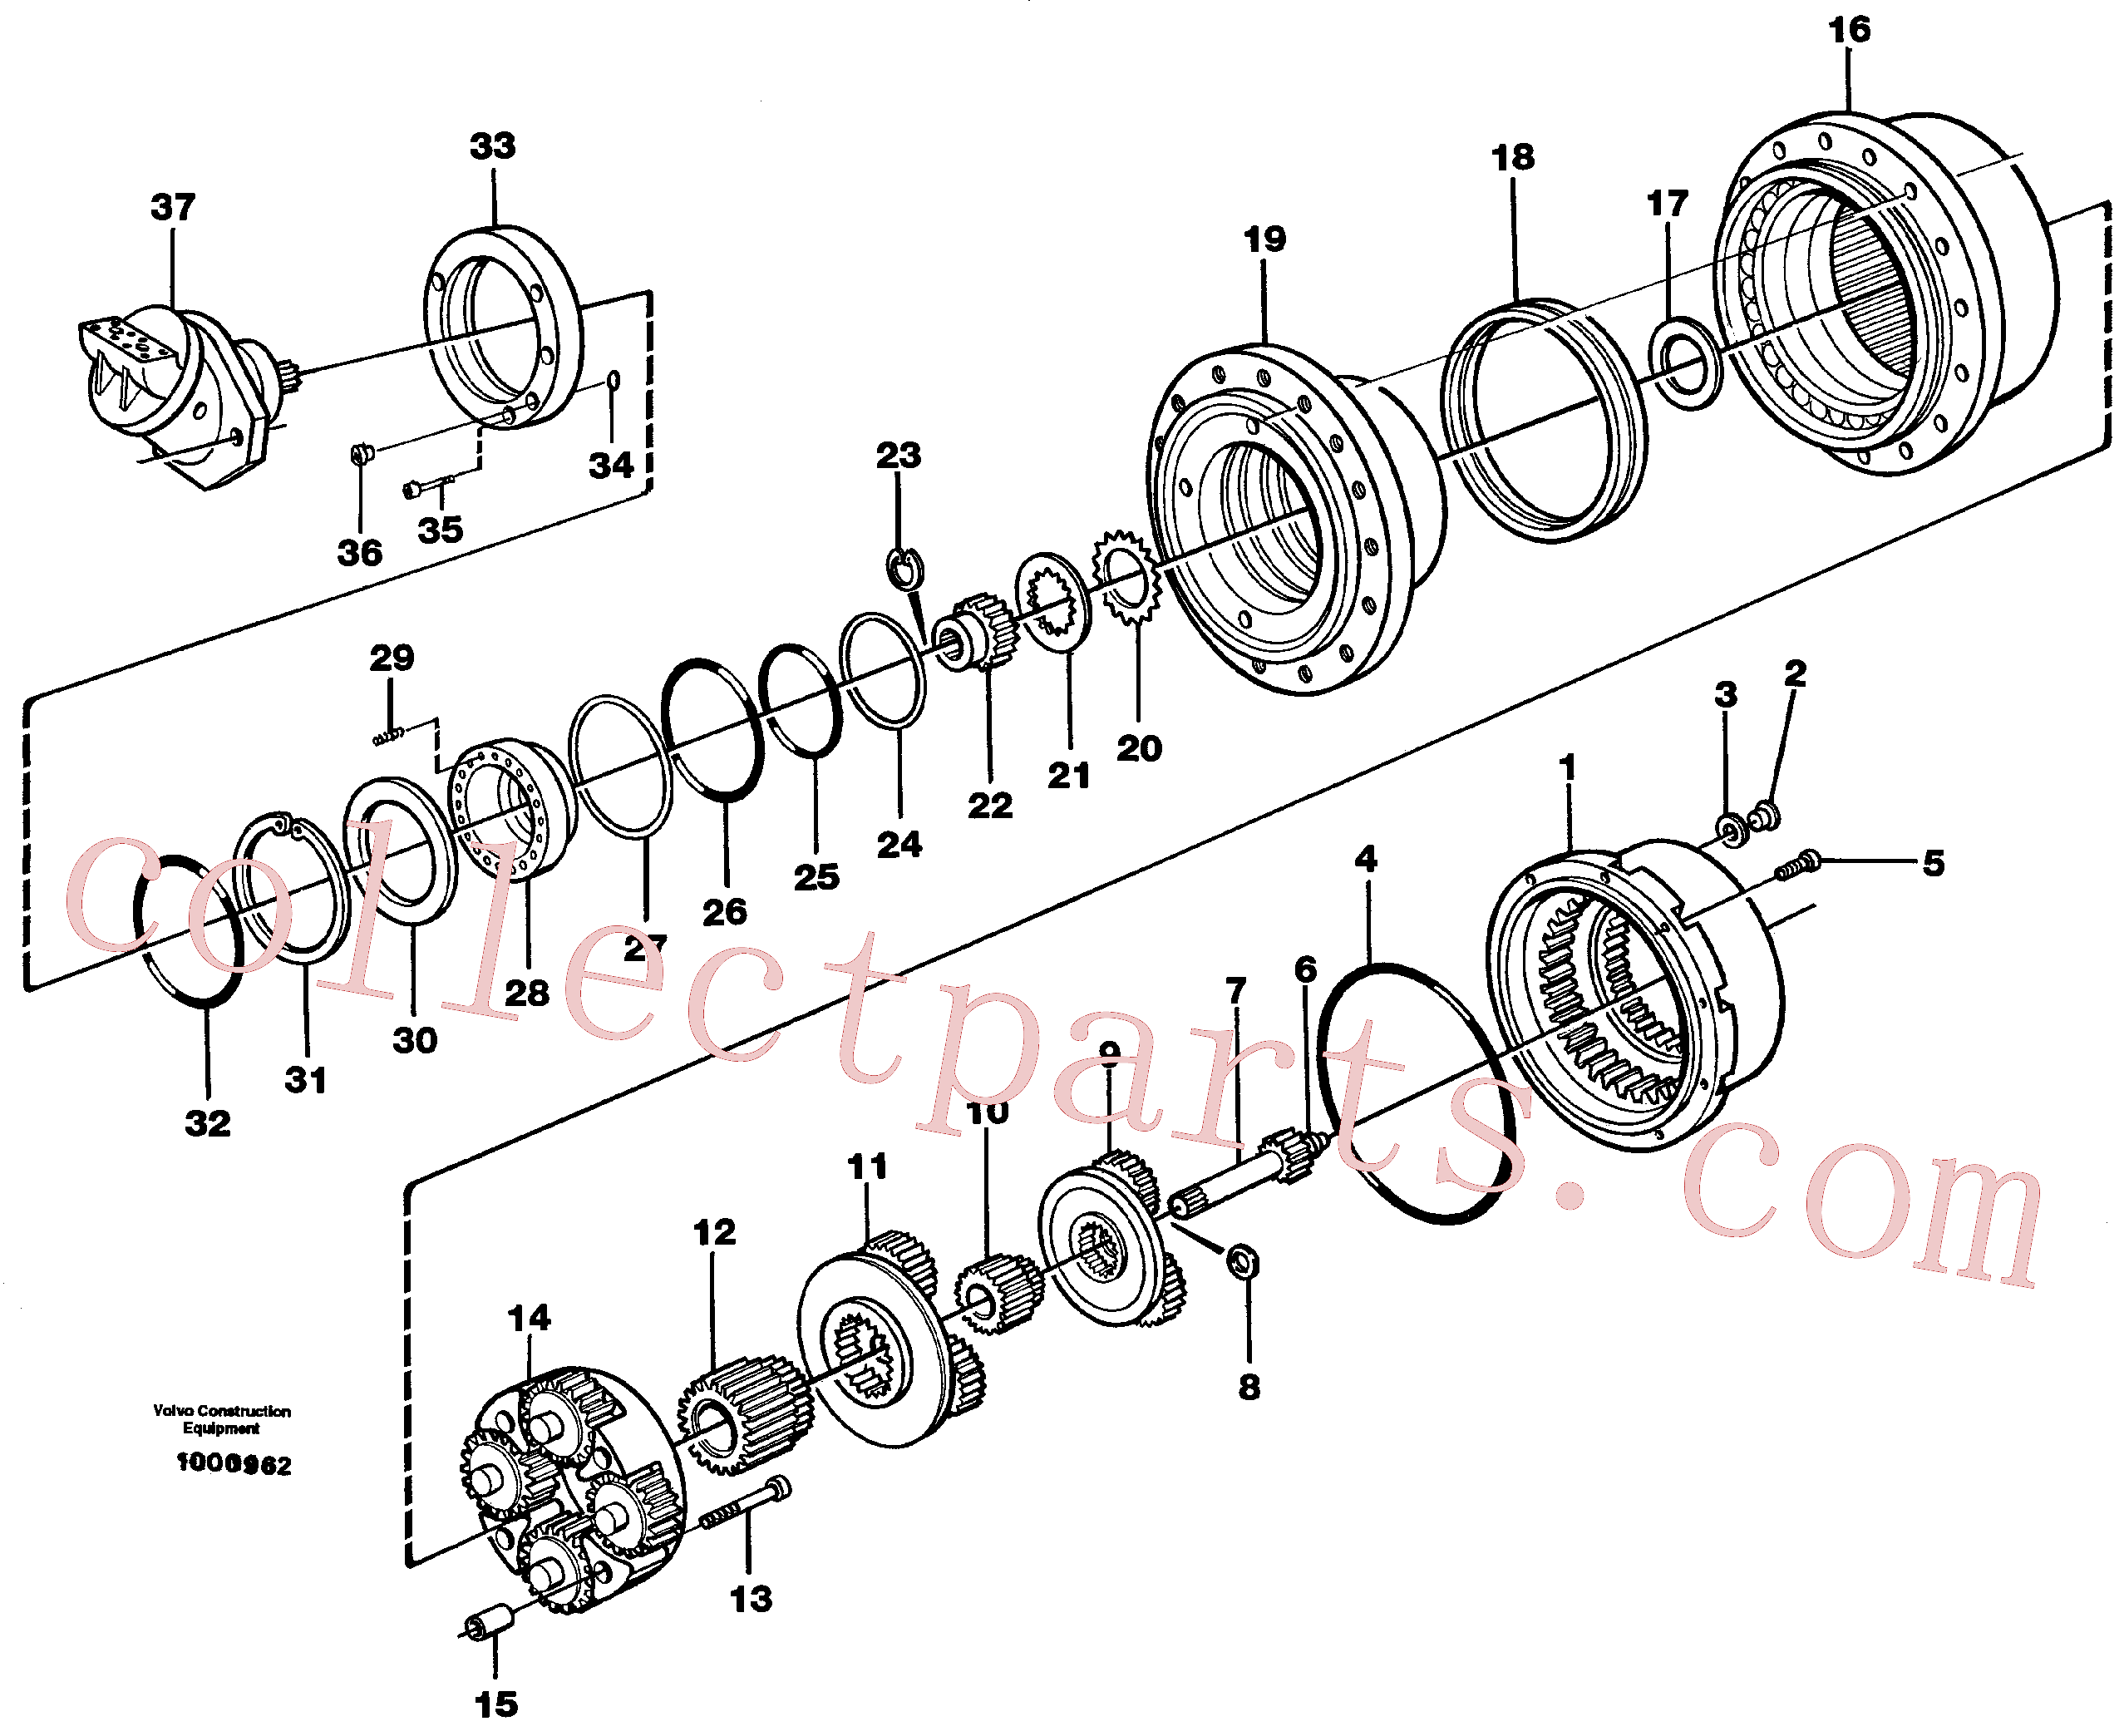 VOE11701197 for Volvo Planetary gear, travel(1000962 assembly)